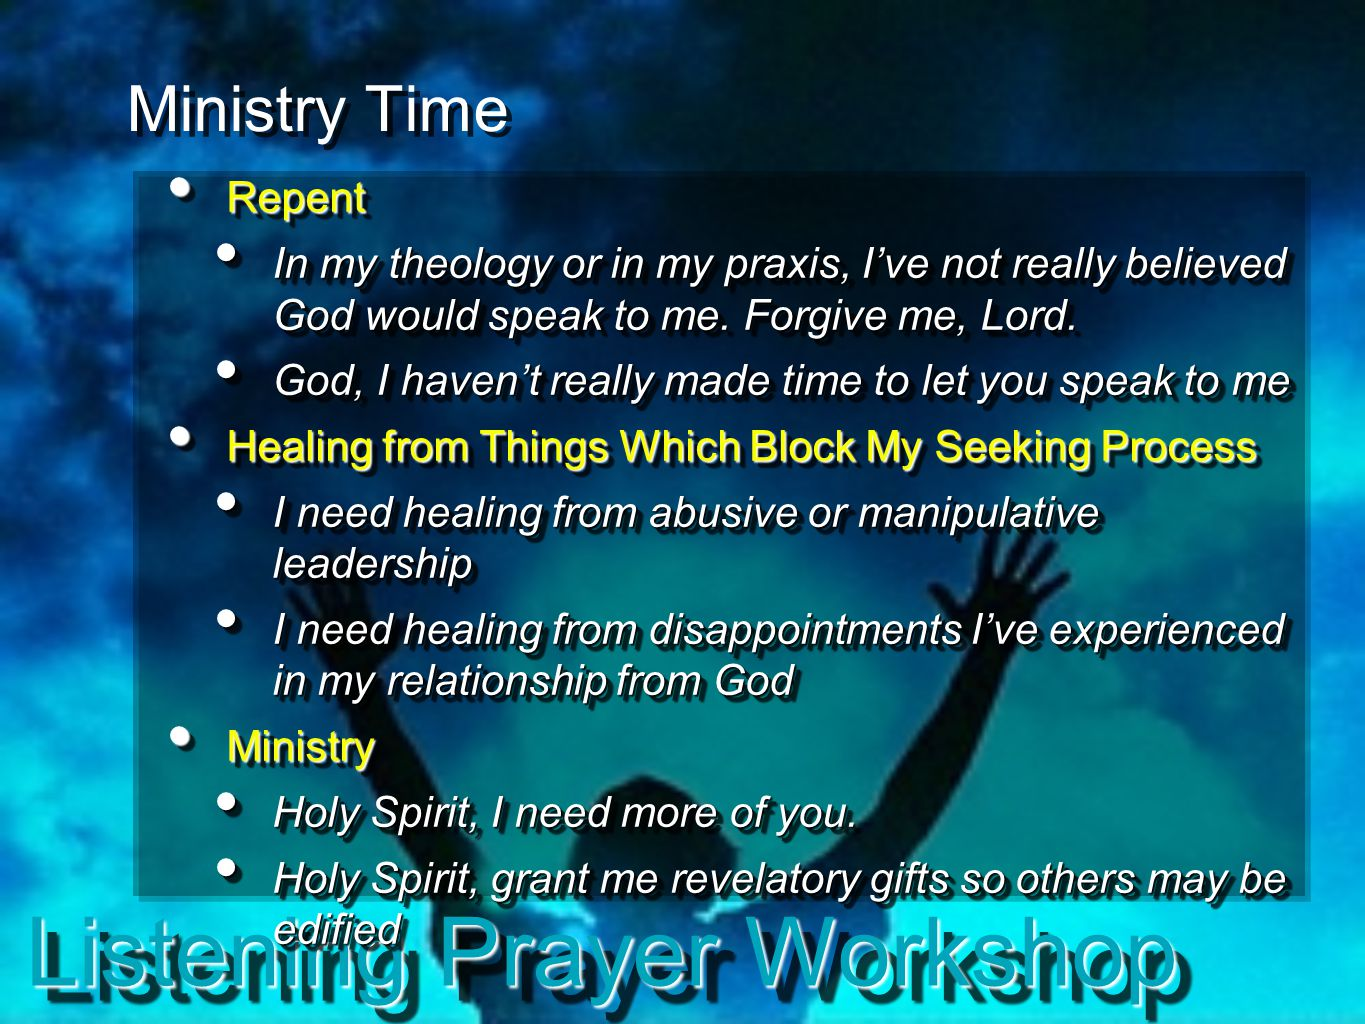 Listening Prayer Workshop Ministry Time Repent Repent In my theology or in my praxis, I've not really believed God would speak to me. Forgive me, Lord